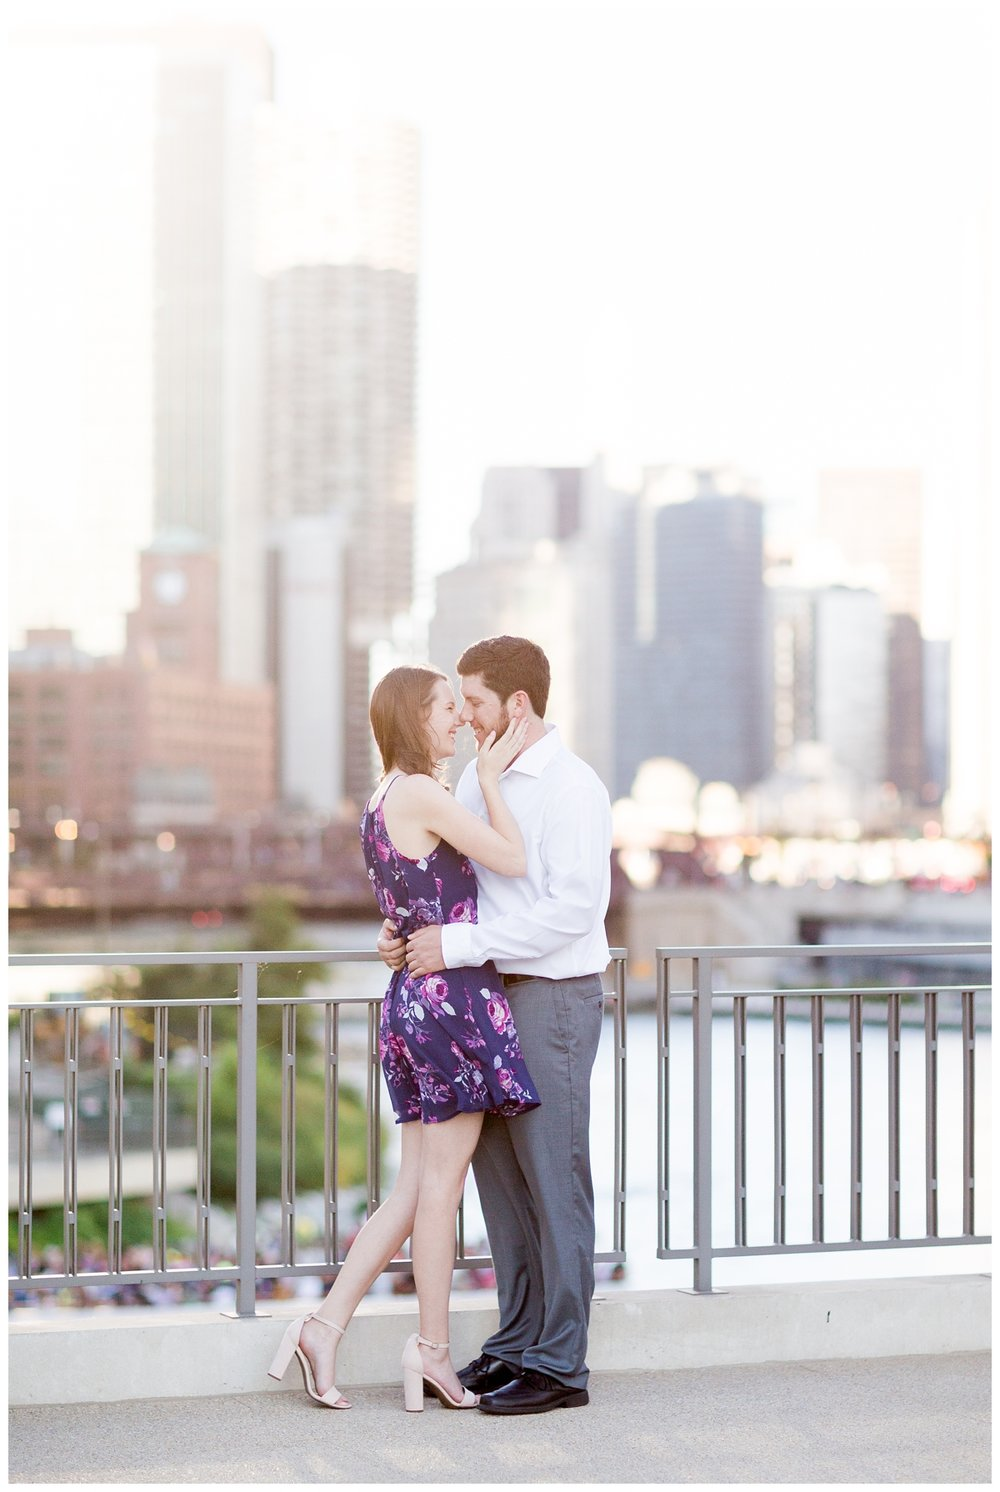 Destination-Kinzie-St.Bridge-Chicago-Engagement-Photos_5648.jpg